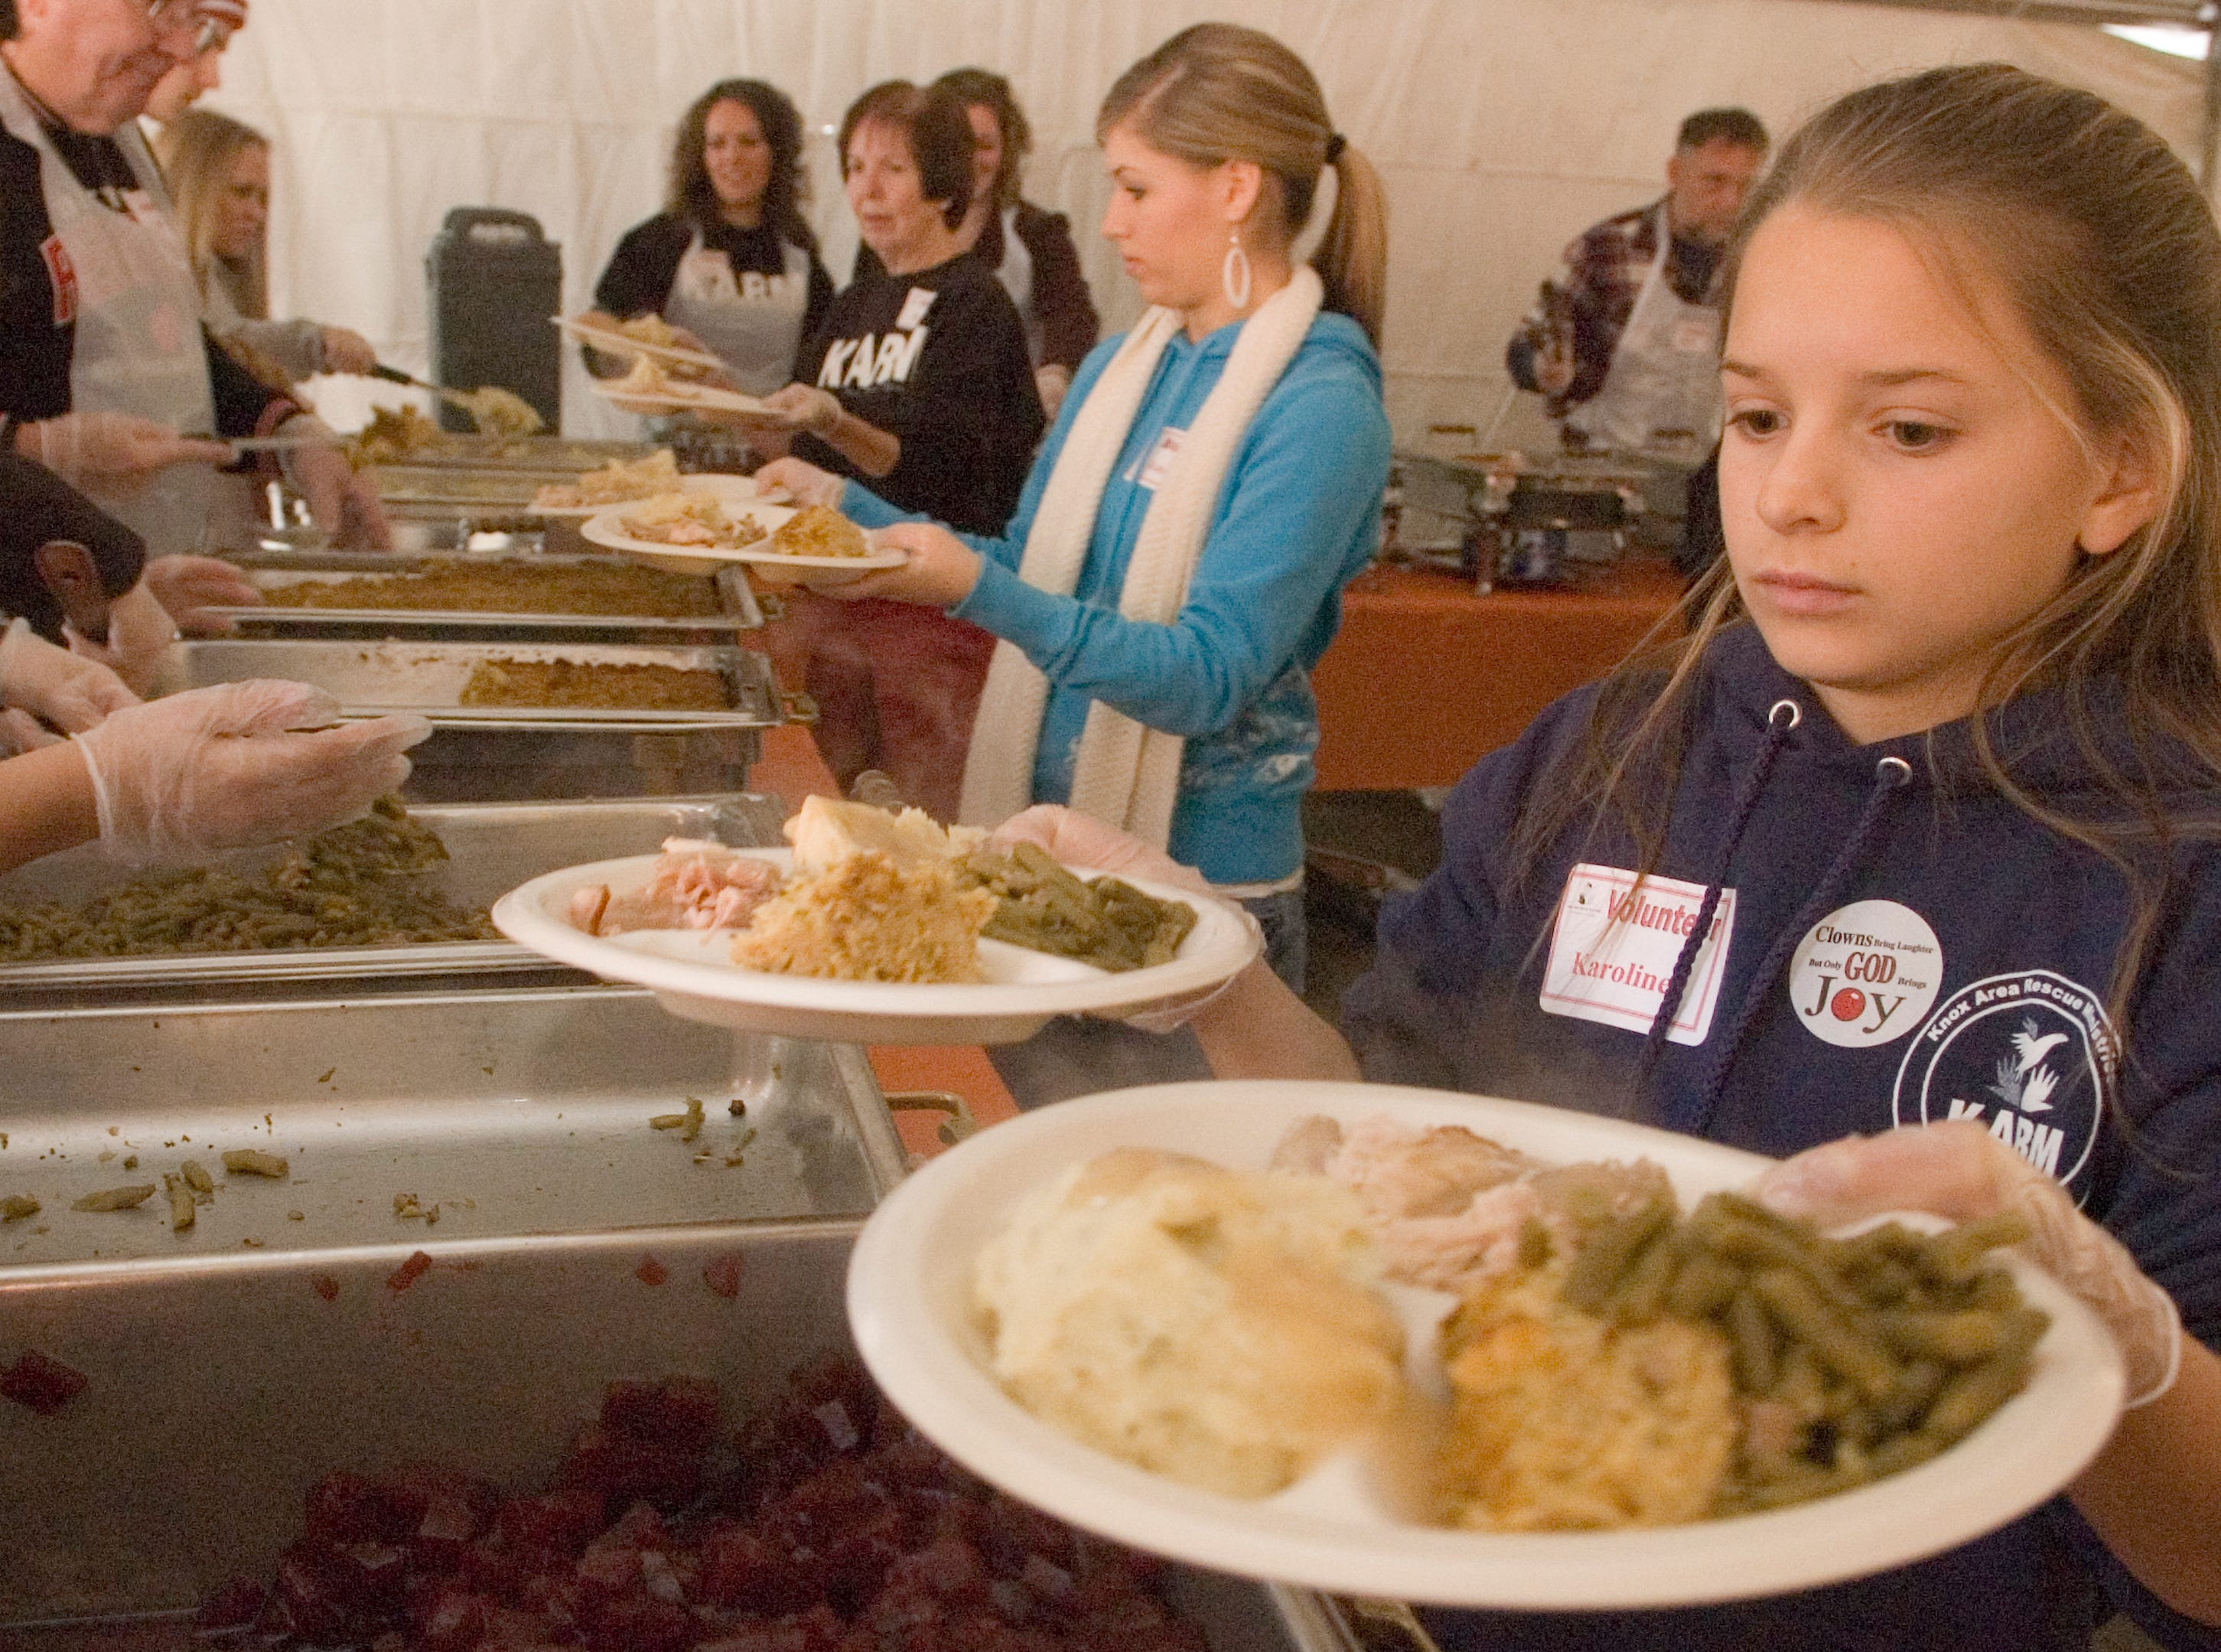 Karoline  Barnett, 10, right, and her sister Kate Barnett, 17, center move down the serving line gathering plates of food at the Annual Knox Area Rescue Ministries Thanksgiving Tent of hope meal.  Thursday, November 27, 2008